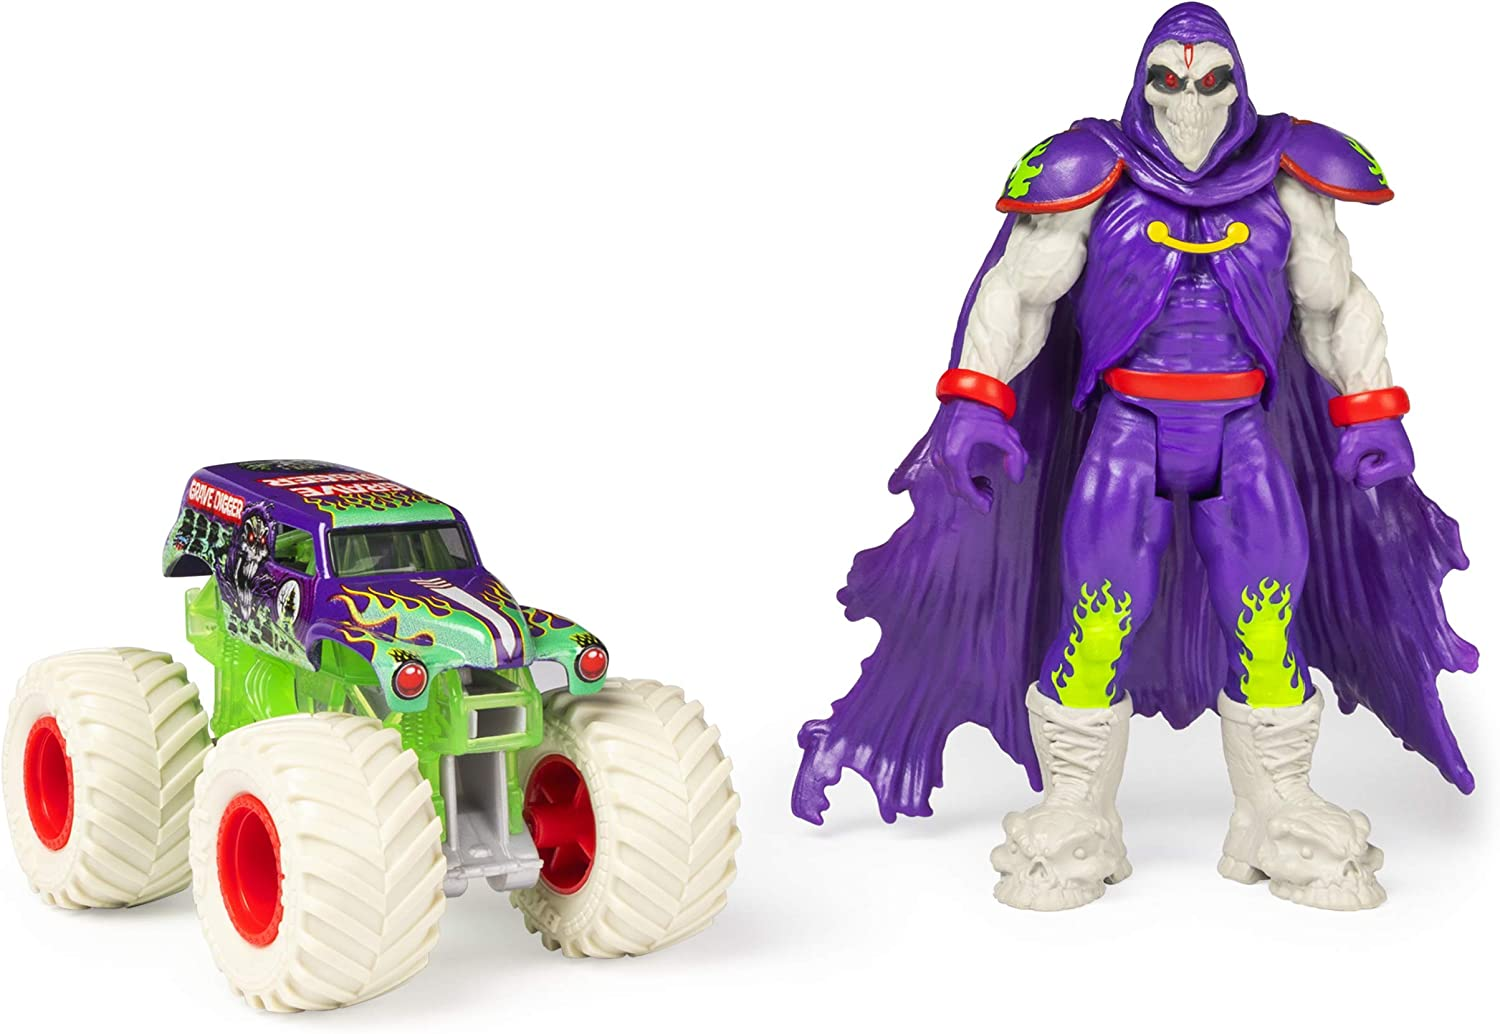 Amazon Com Monster Jam Official Grave Digger 1 64 Scale Monster Truck And 5 Inch Grim Creatures Action Figure Set Multicolor Toys Games